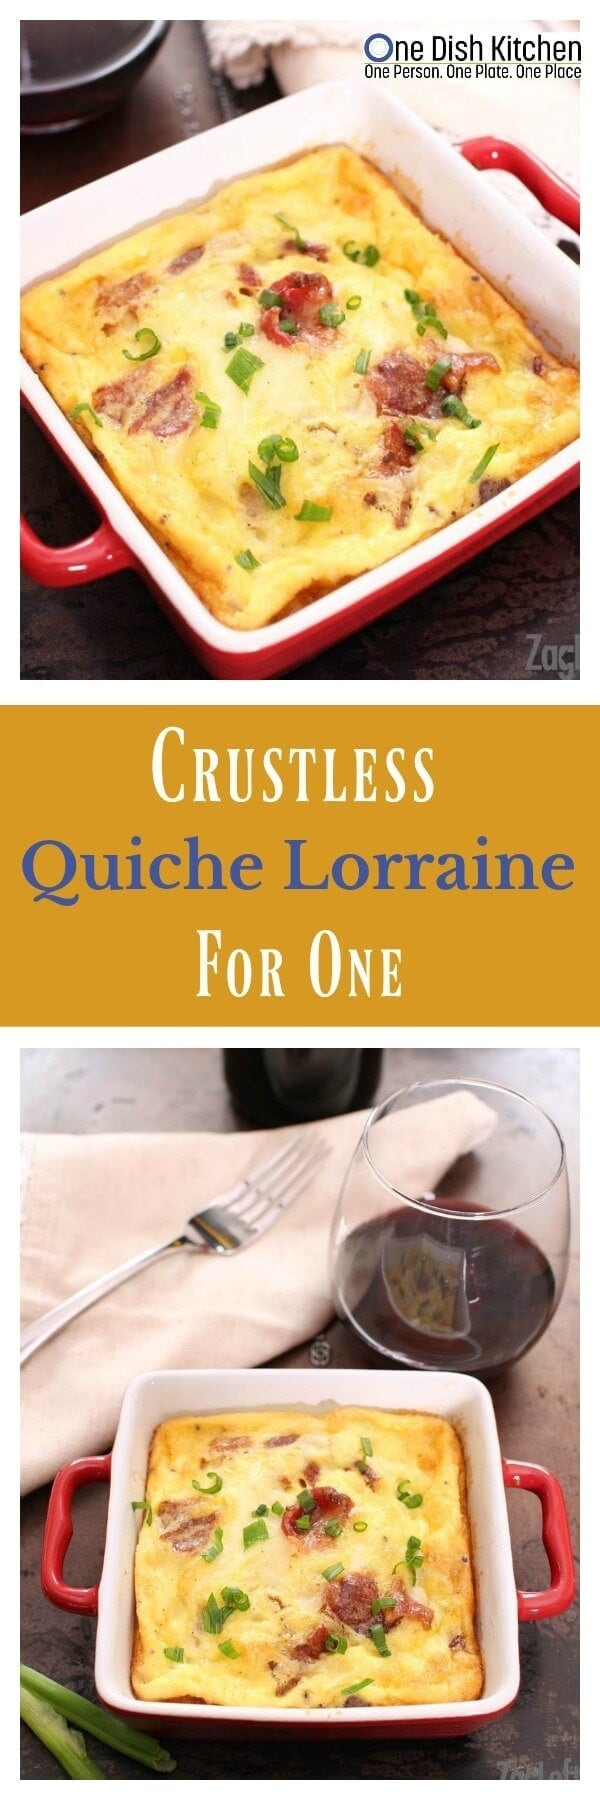 You certainly won't miss the crust in this lovely Crustless Quiche Lorraine for one! It's perfect for breakfast, lunch or dinner. Two eggs, a little cream, bacon and cheese are just about the only ingredients you'll need to make this delicious recipe for one. | One Dish Kitchen | onedishkitchen.com